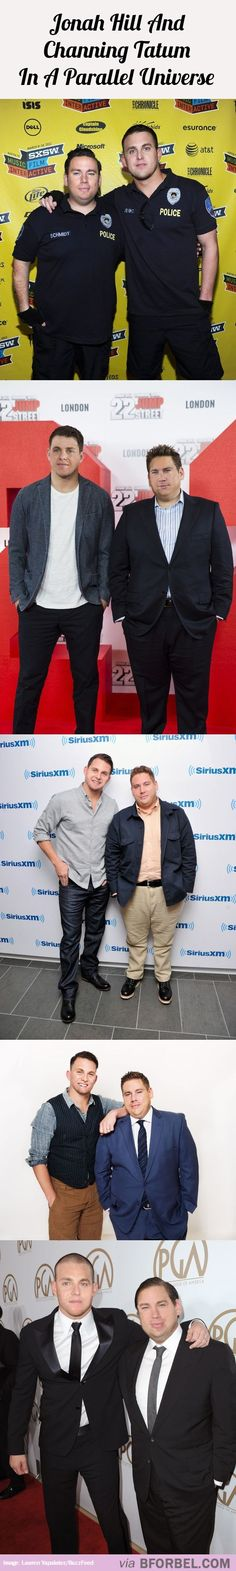 Jonah Hill And Channing Tatum In A Parallel Universe…